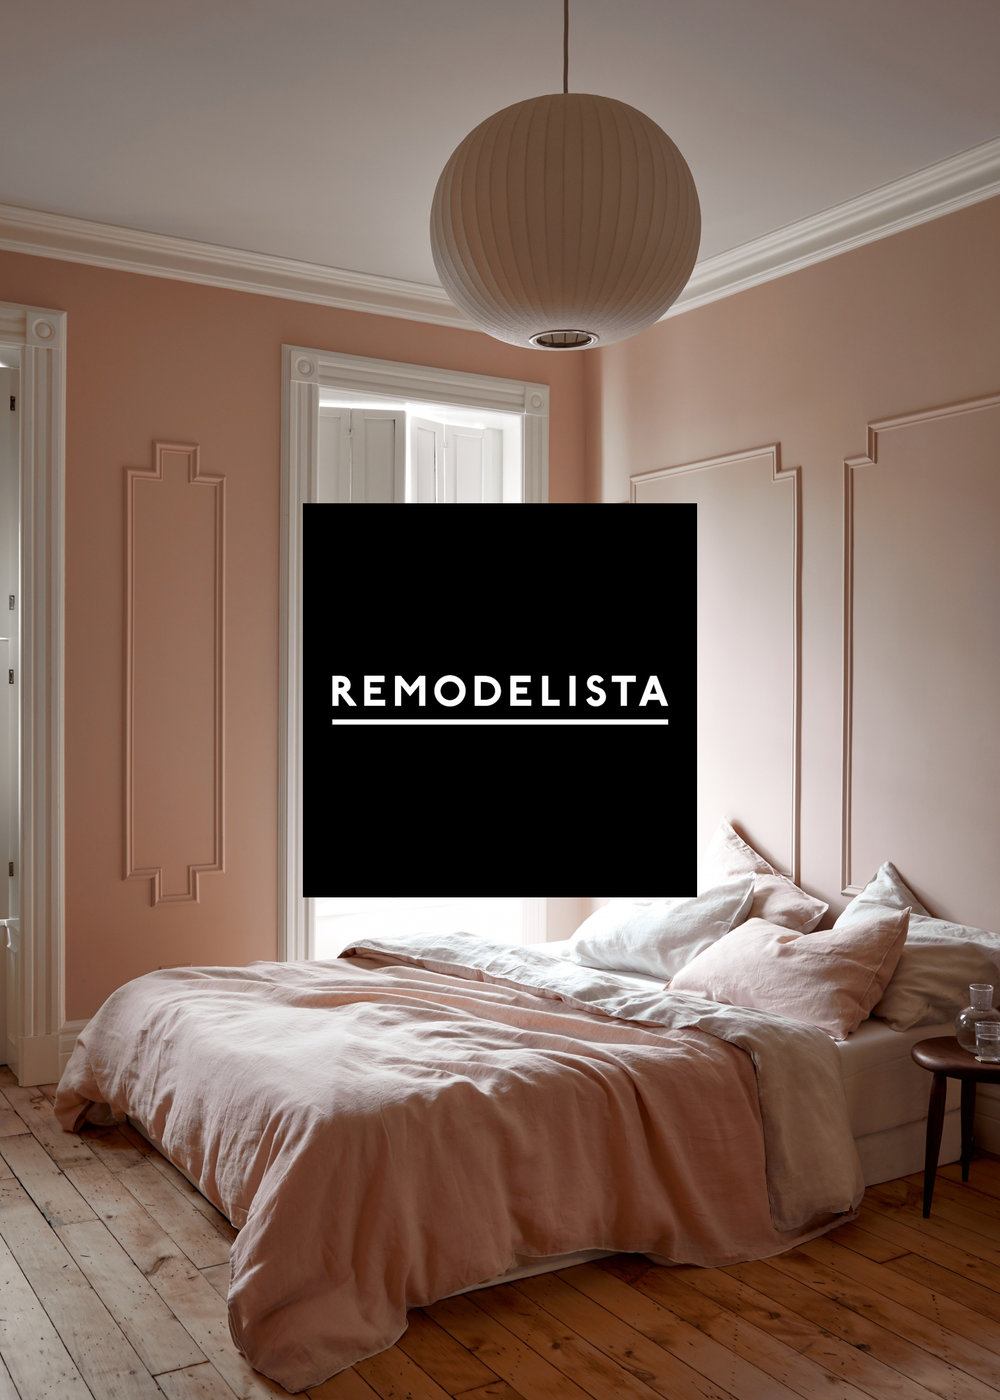 REMODELISTA - THE EXPERT IS IN, 2018